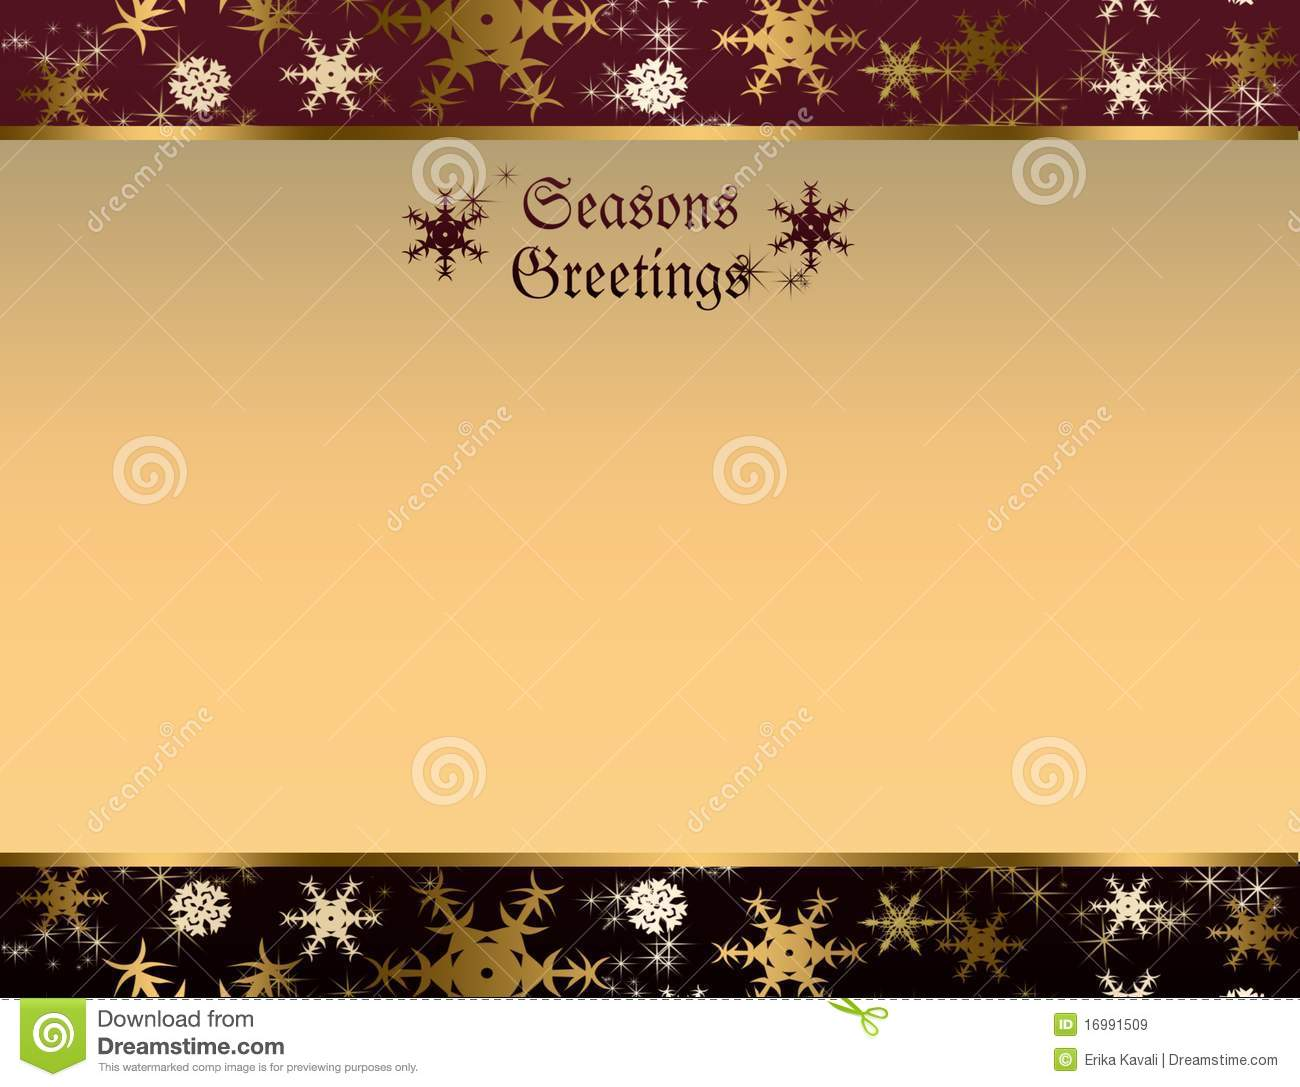 Seasons greetings background stock illustration illustration of seasons greetings background m4hsunfo Choice Image